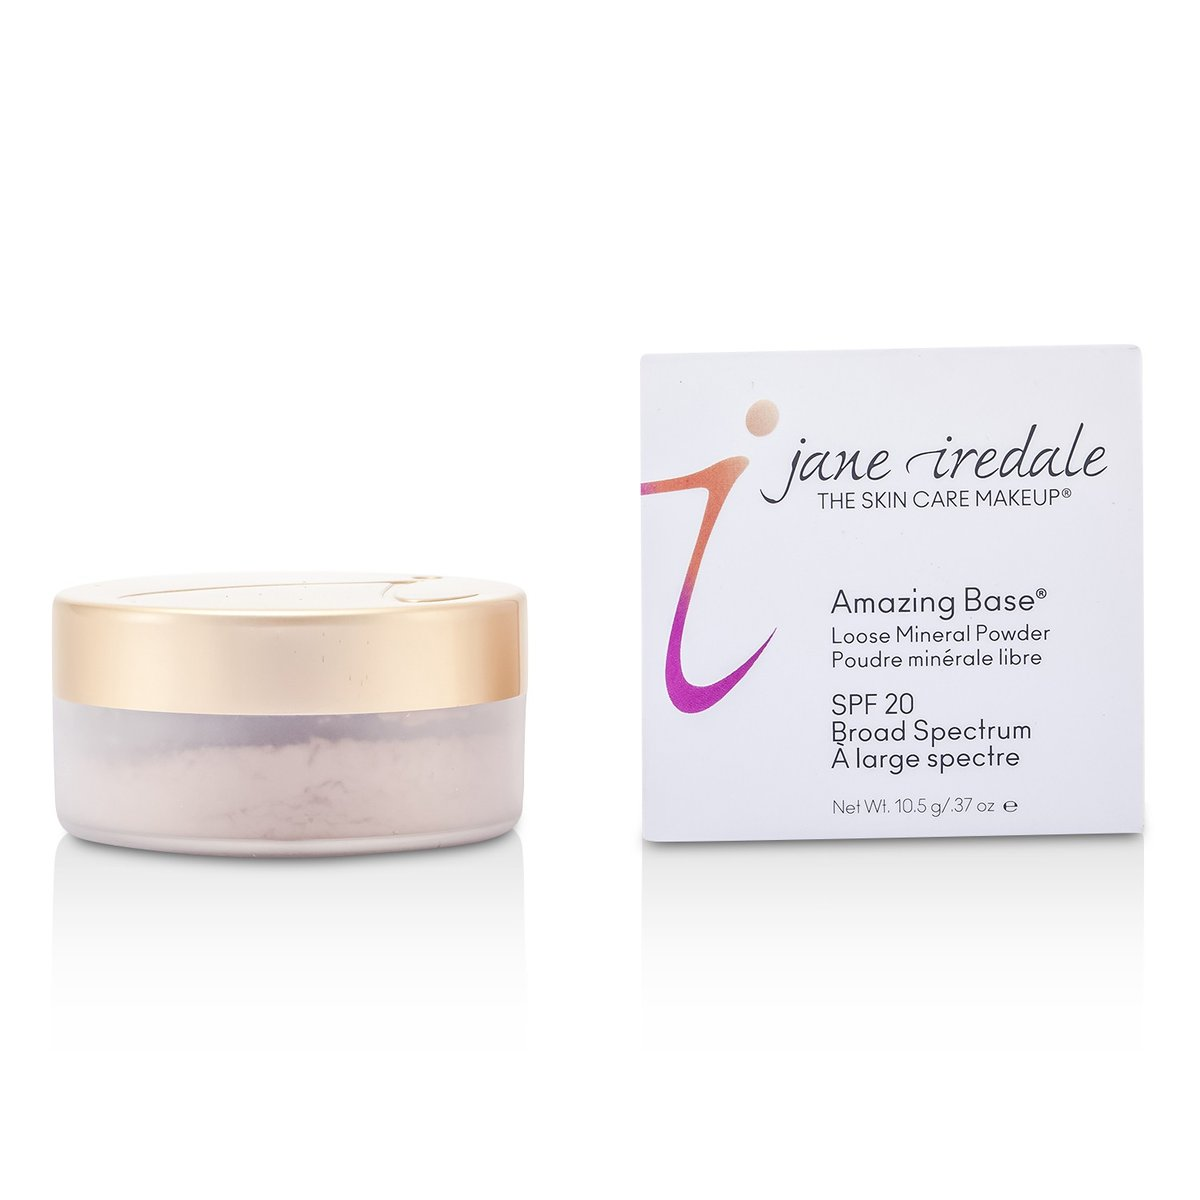 Amazing Base Loose Mineral Powder SPF 20 - Light Beige 10.5g/0.37oz - [Parallel Import Product]